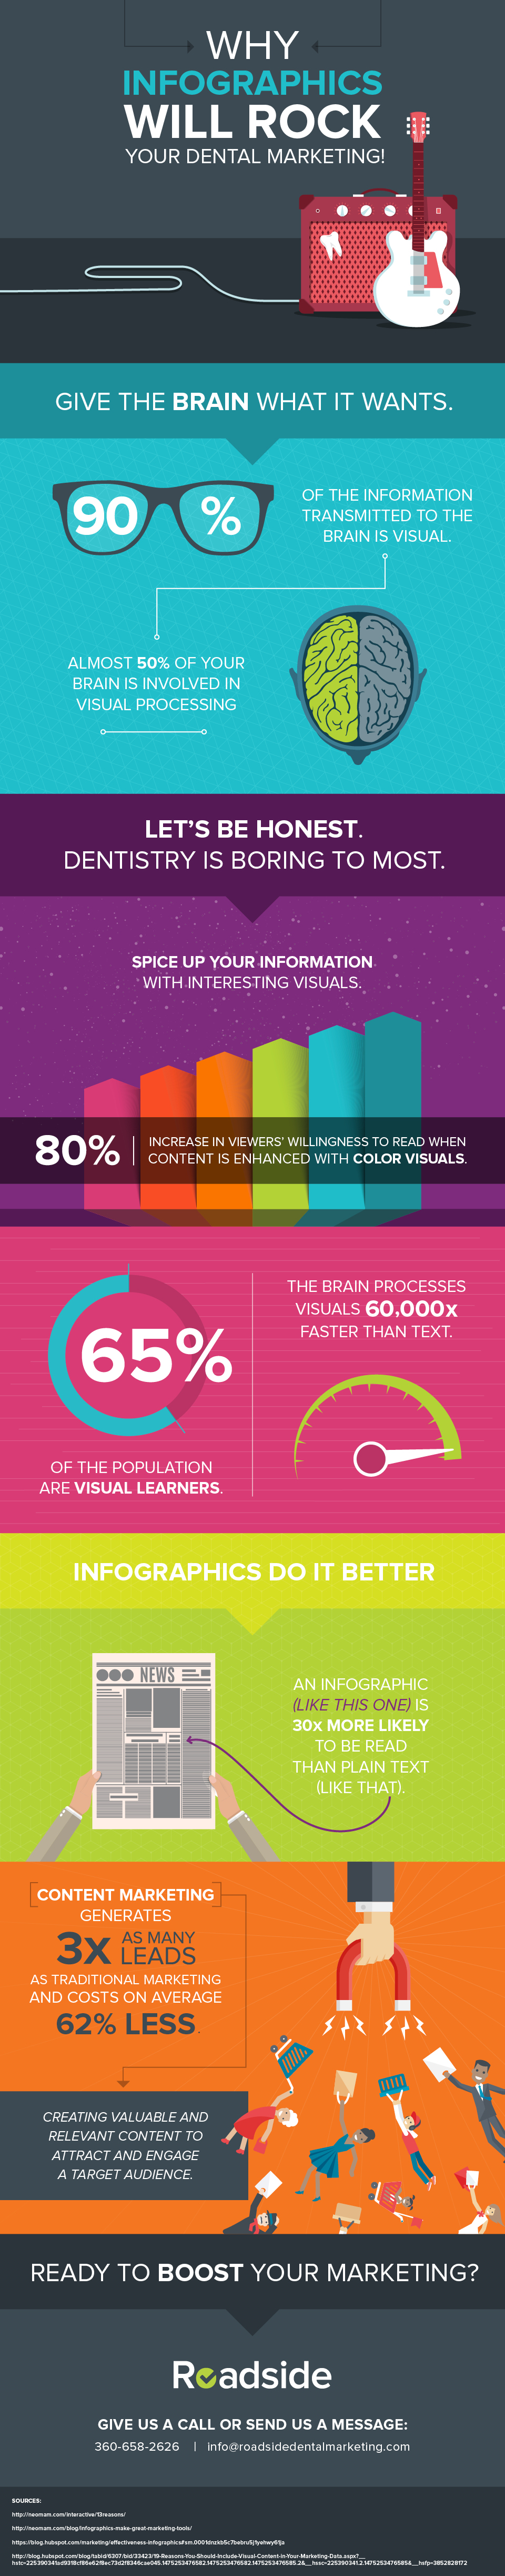 Including infographics in your dental marketing is a way to educate and engage.